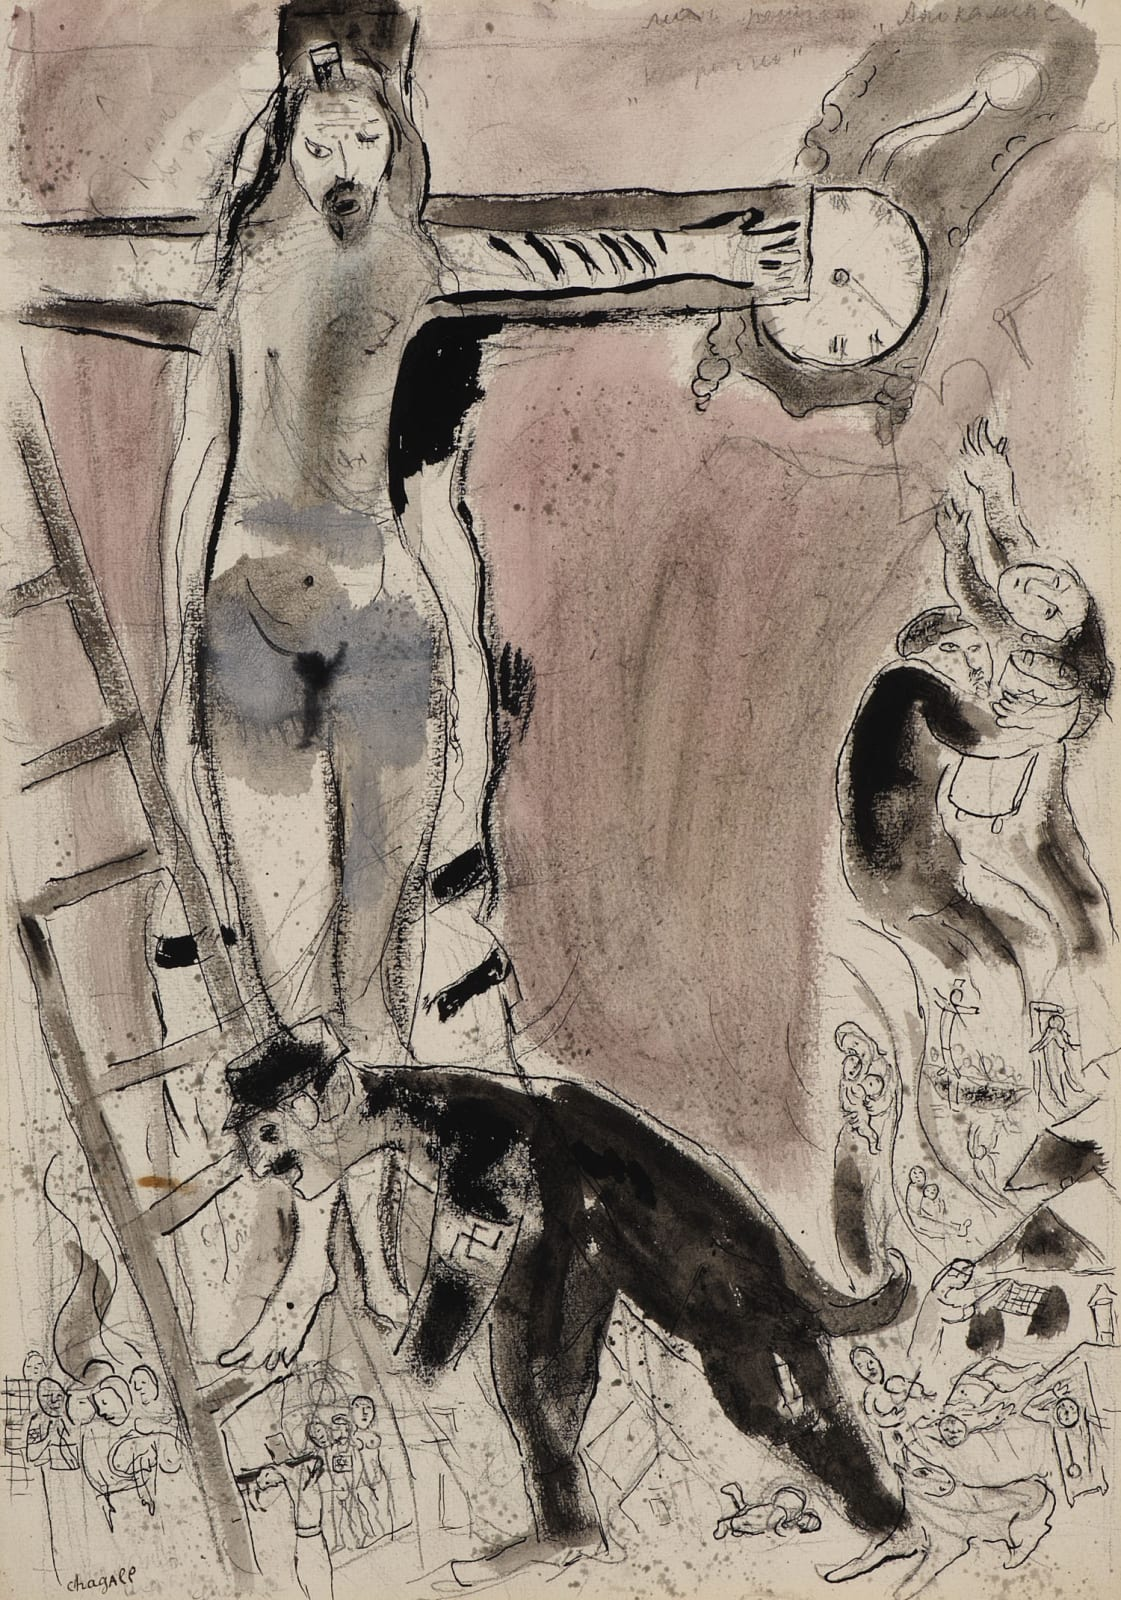 Apocalypse en Lilas, Capriccio by Marc Chagall (1887-1985), 1945. Gouche, pencil, Indian wash ink and Indian ink on paper.